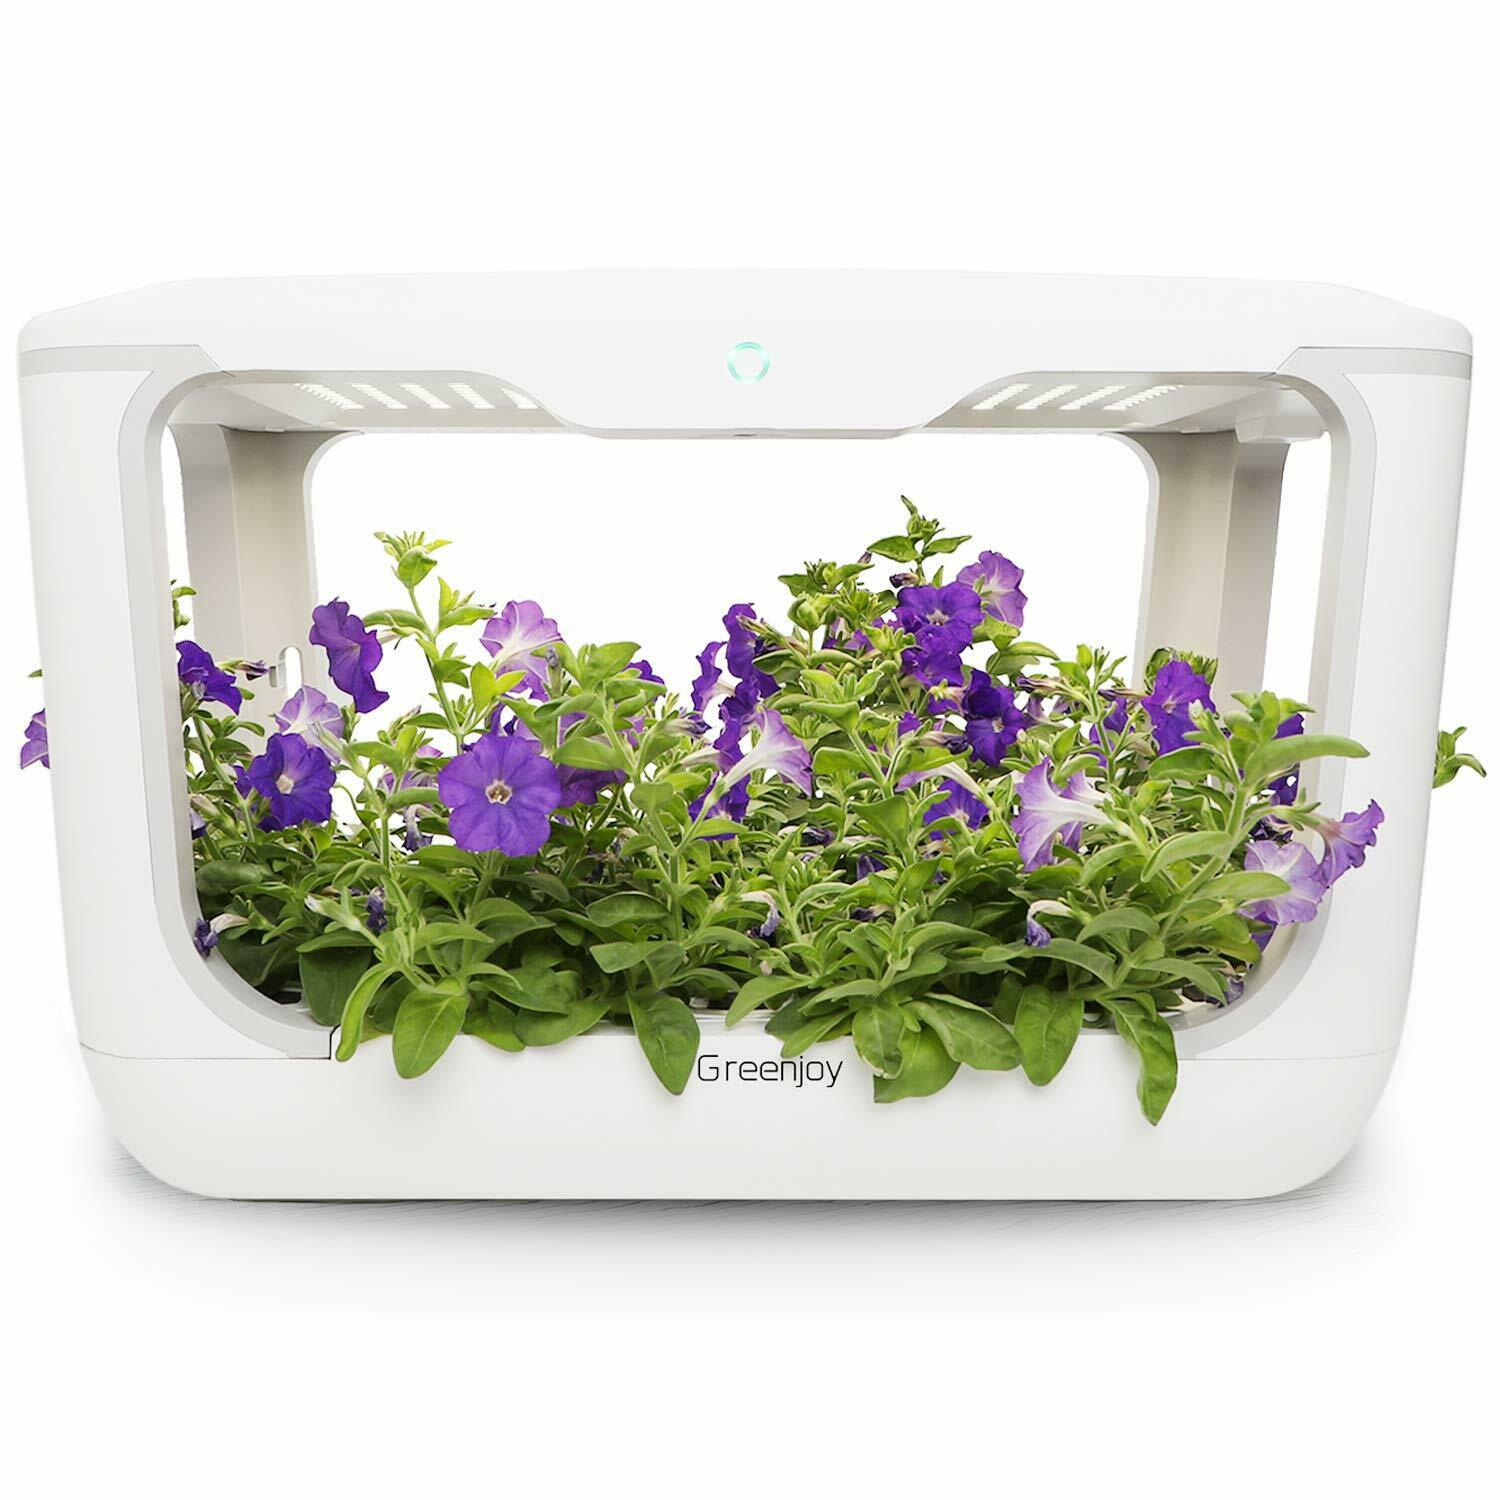 Greenjoy Indoor Herb Garden Starter Kit, Hydroponics Growing System, Plant Germi 1